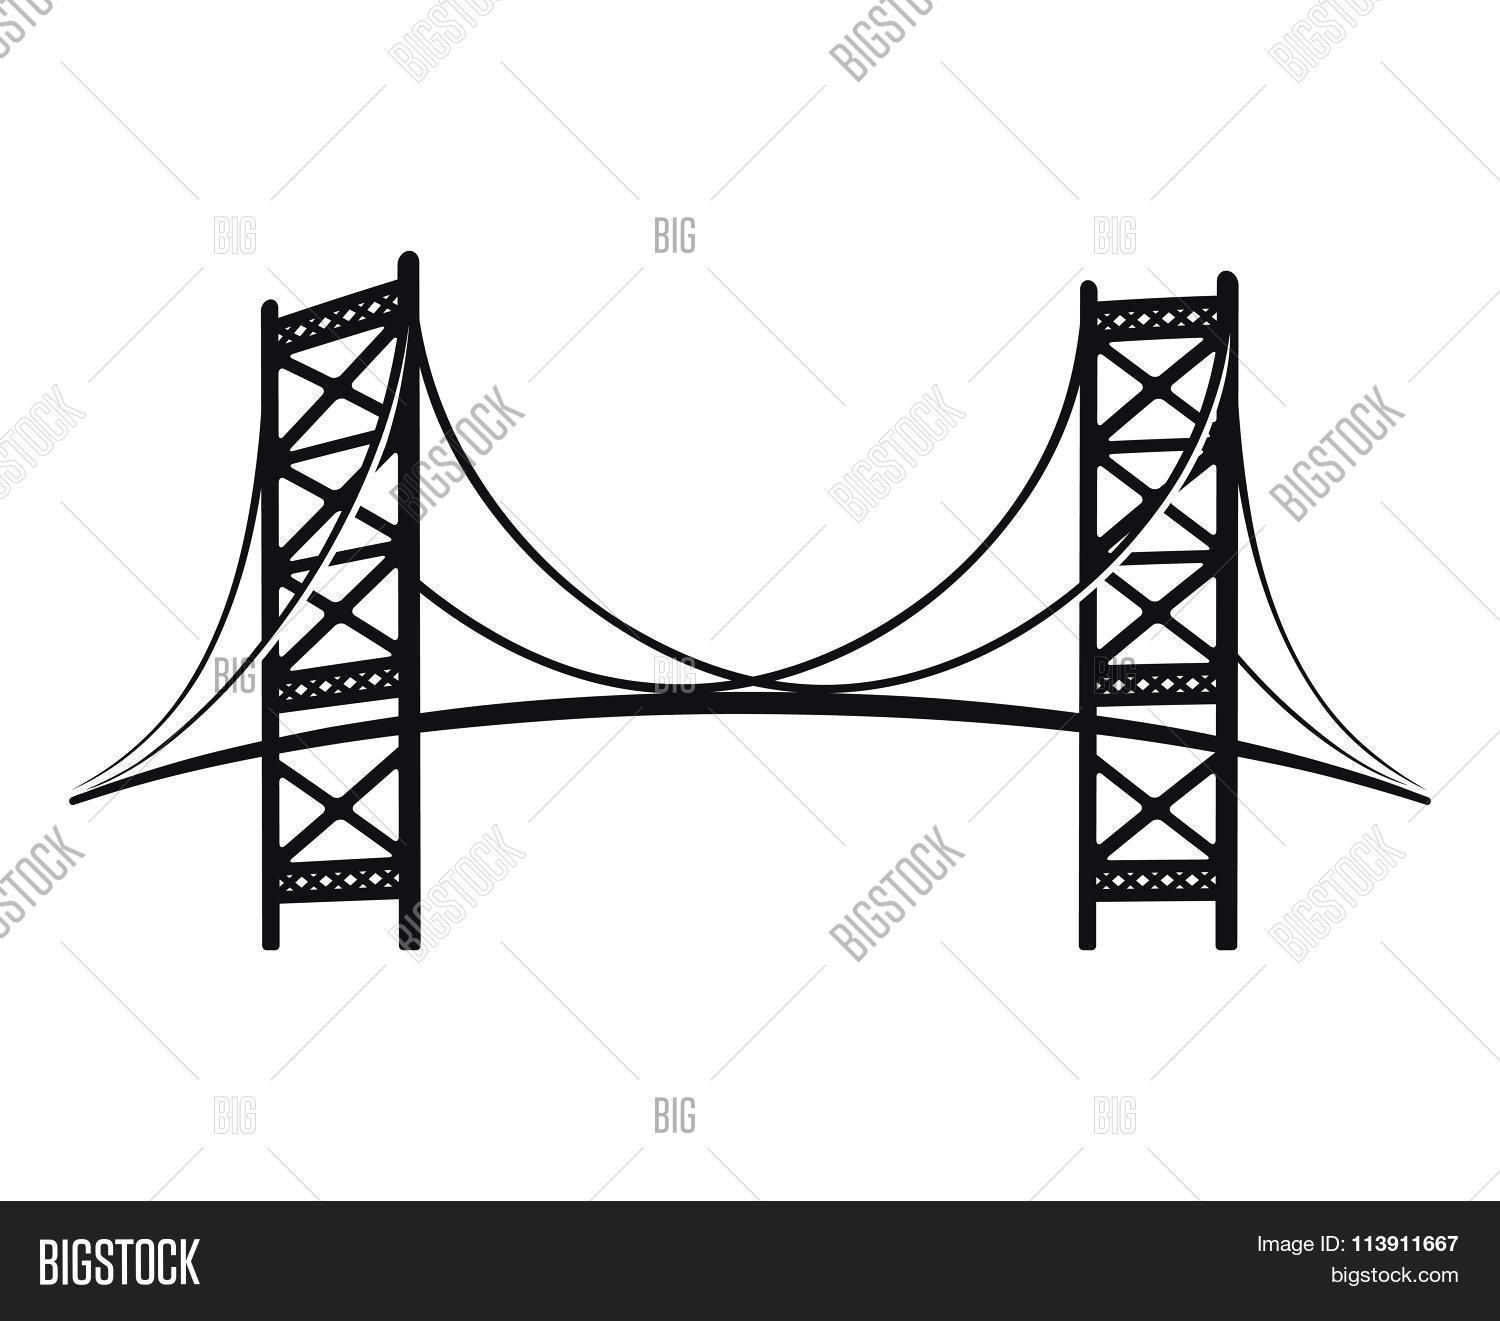 Bridge line drawing at getdrawings free for personal use